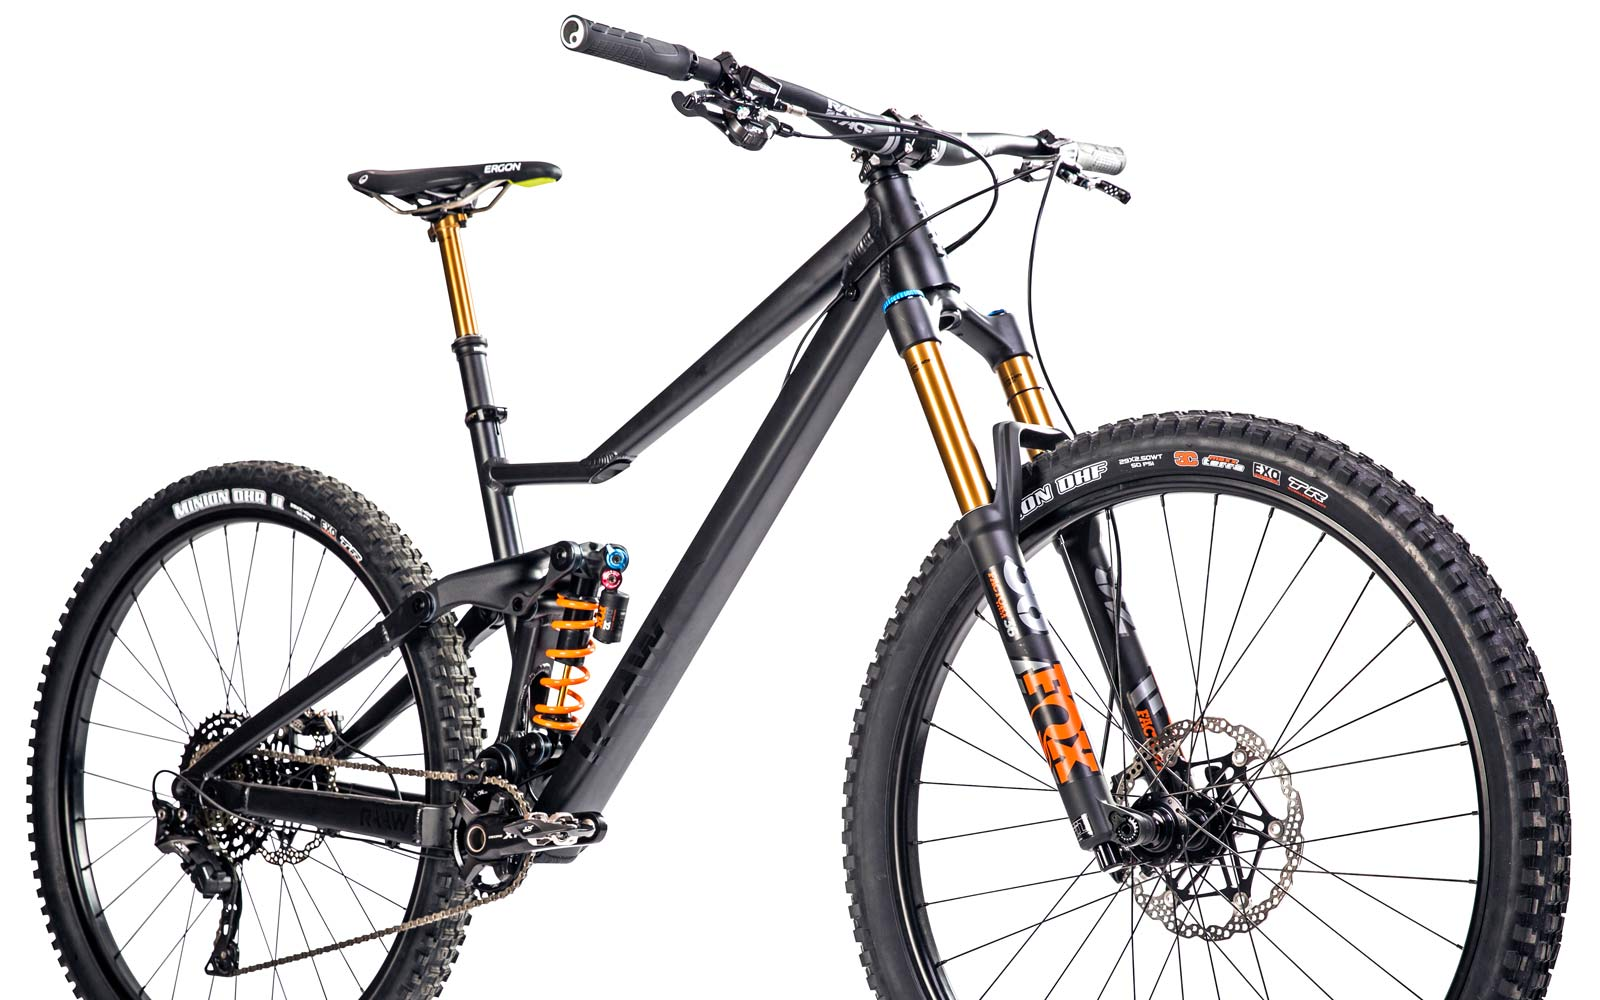 Get RAAW with 160mm of the new Madonna of enduro mountain